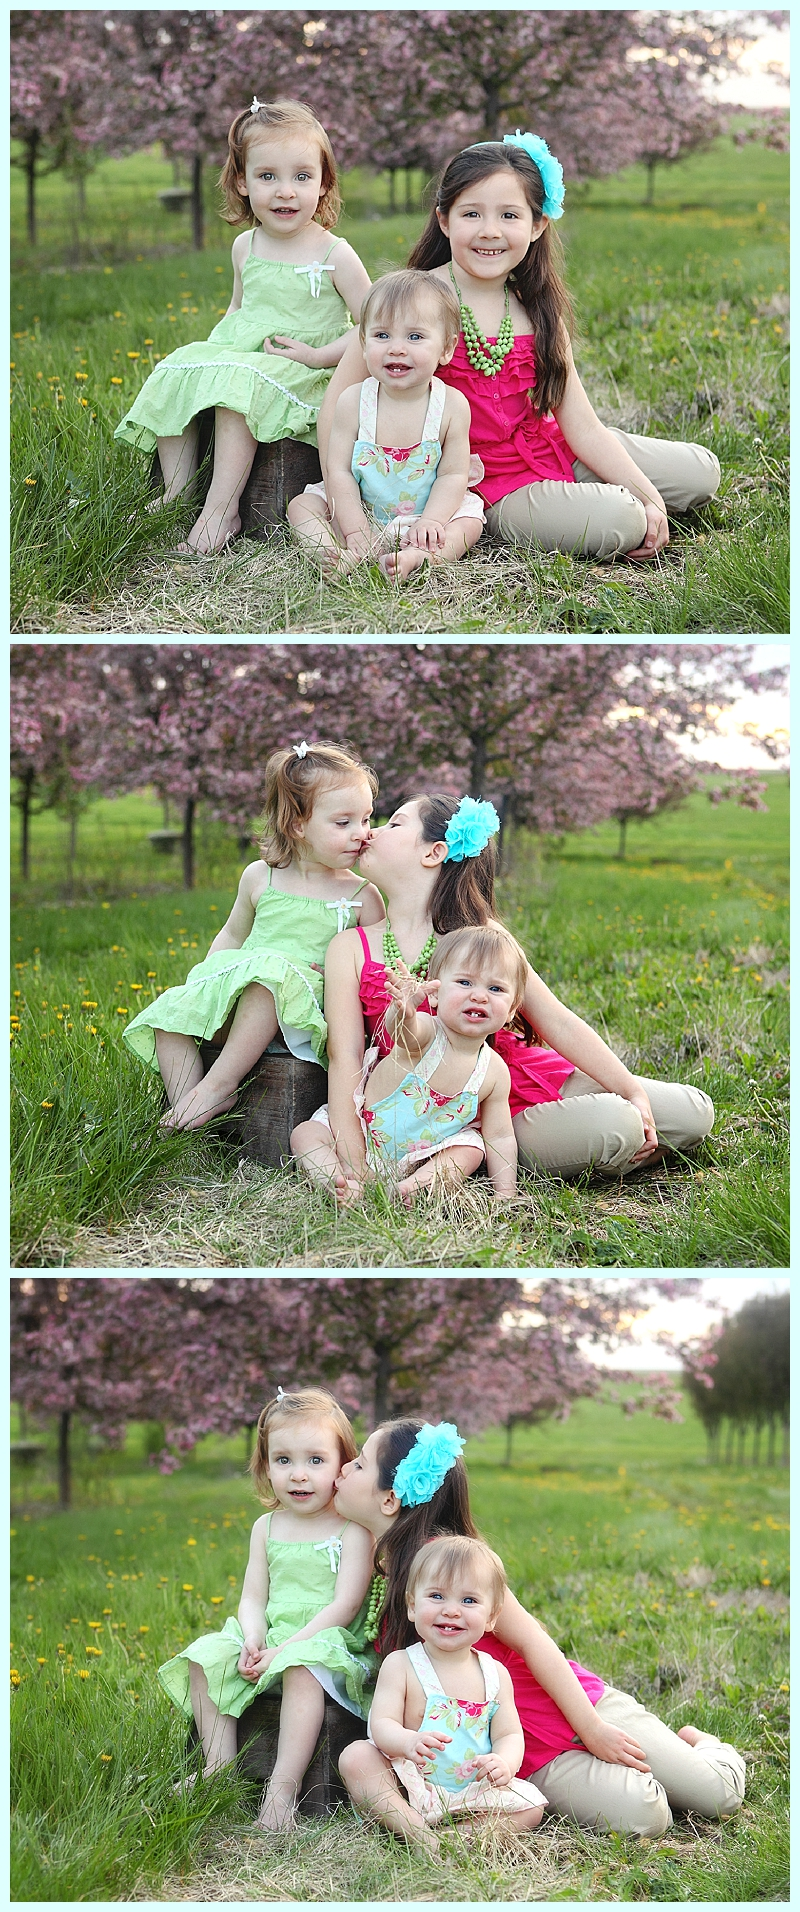 My 3 girls portrait in front of MN spring blossoms.